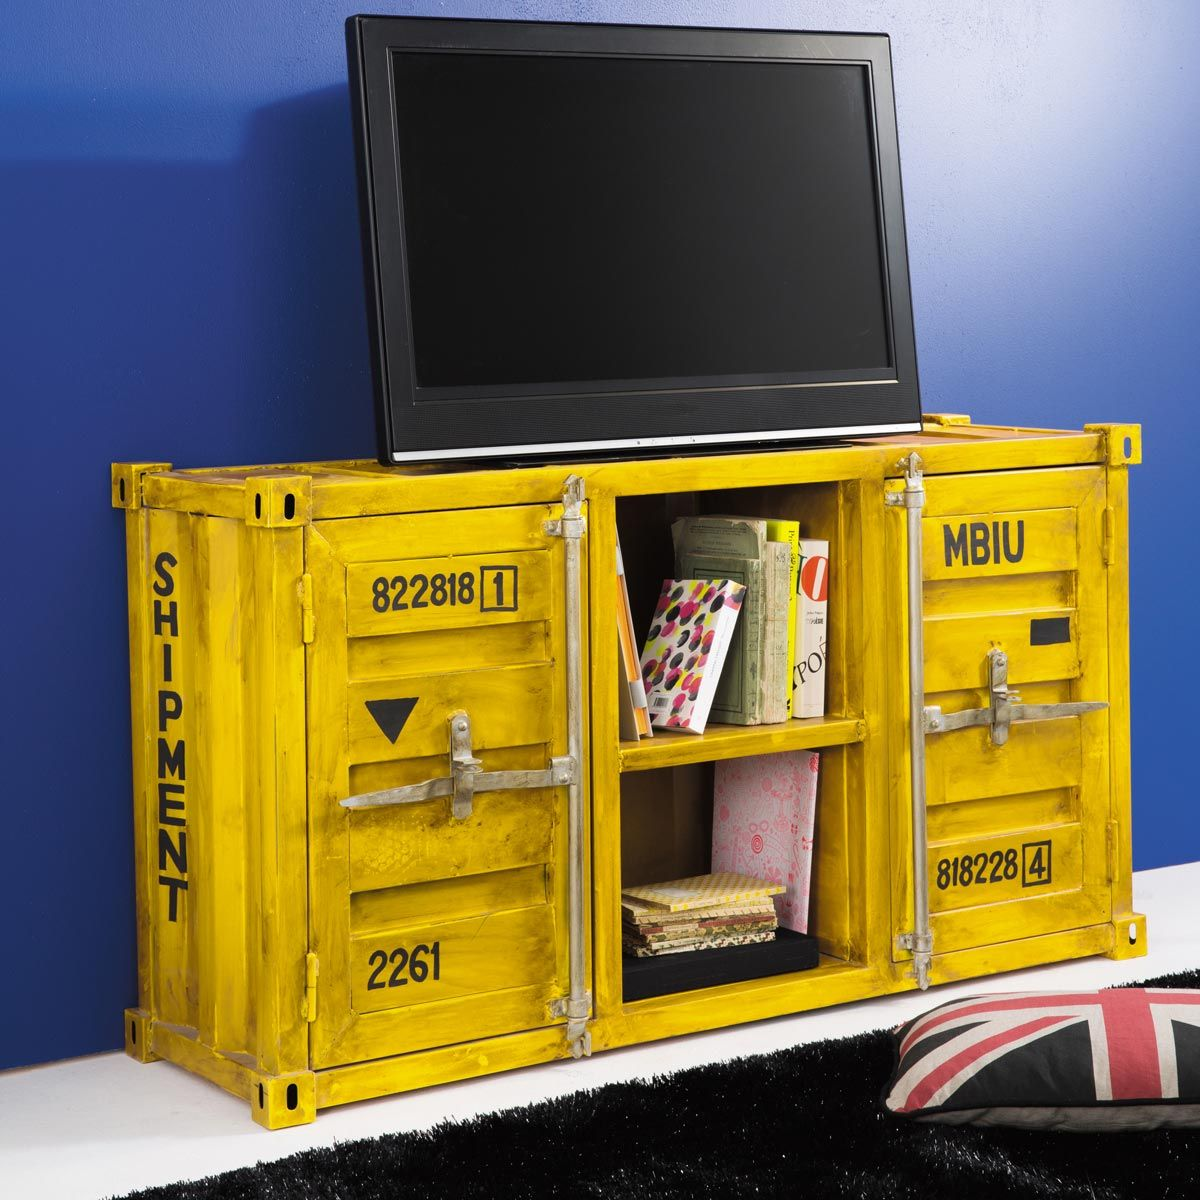 Meuble Tv Container - Meuble Tv Container Carlingue Home Pinterest[mjhdah]http://www.teensanalyzed.us/img/217819/0f07f595f1758e64d2aaf6cd77af58d7.jpg